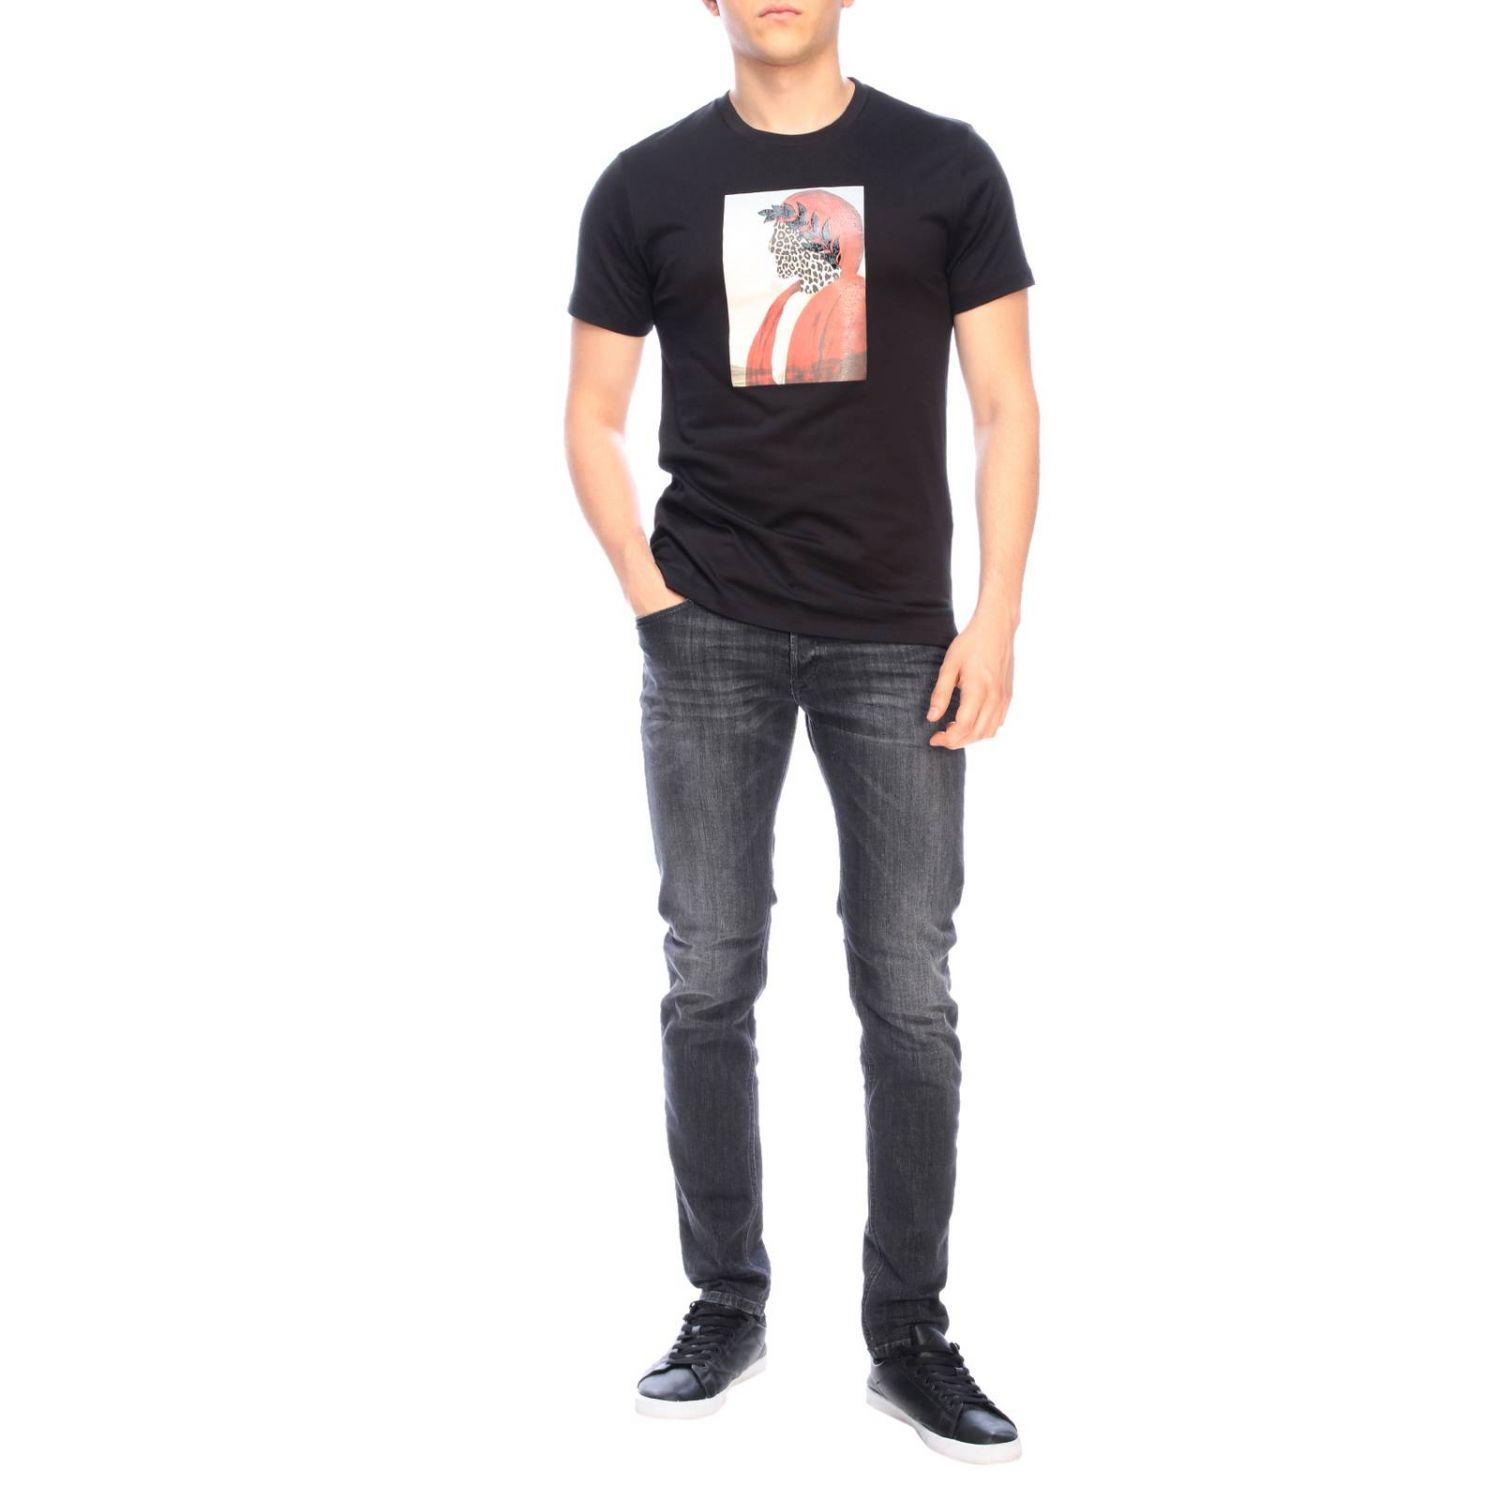 T-shirt men Roberto Cavalli black 2